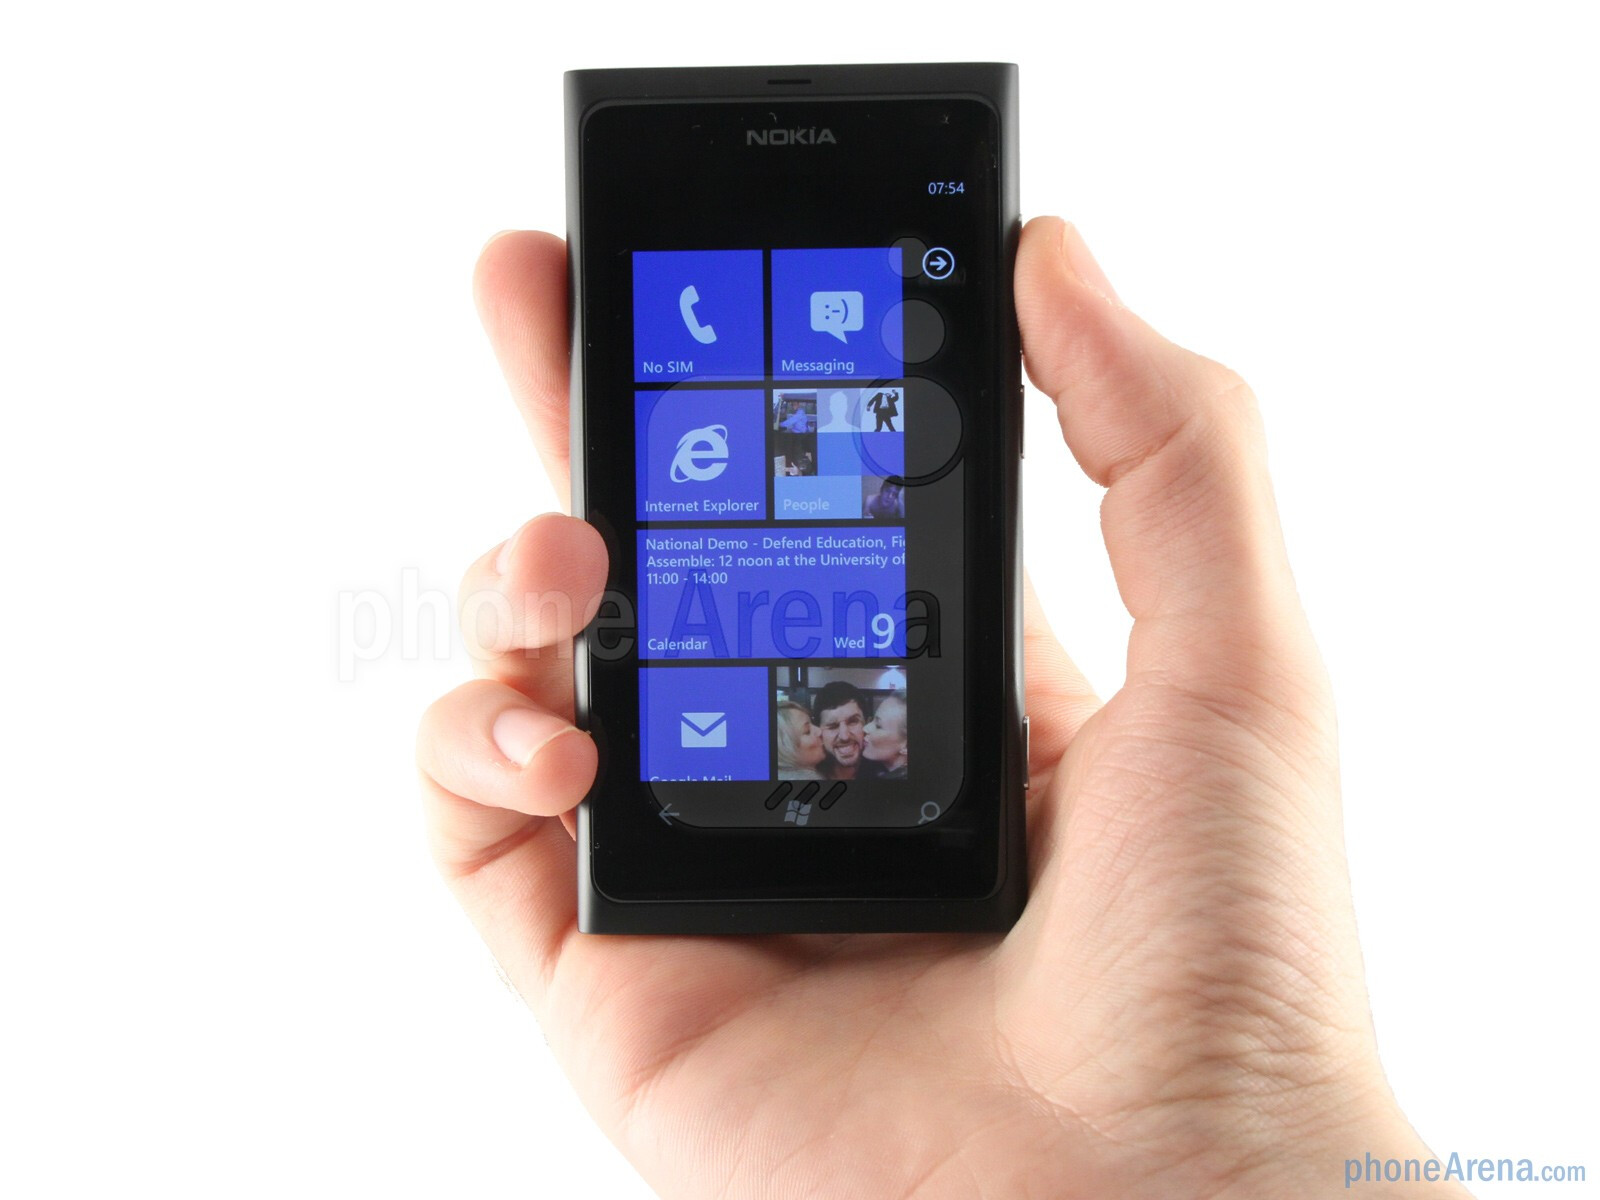 fring for windows phone 7.5